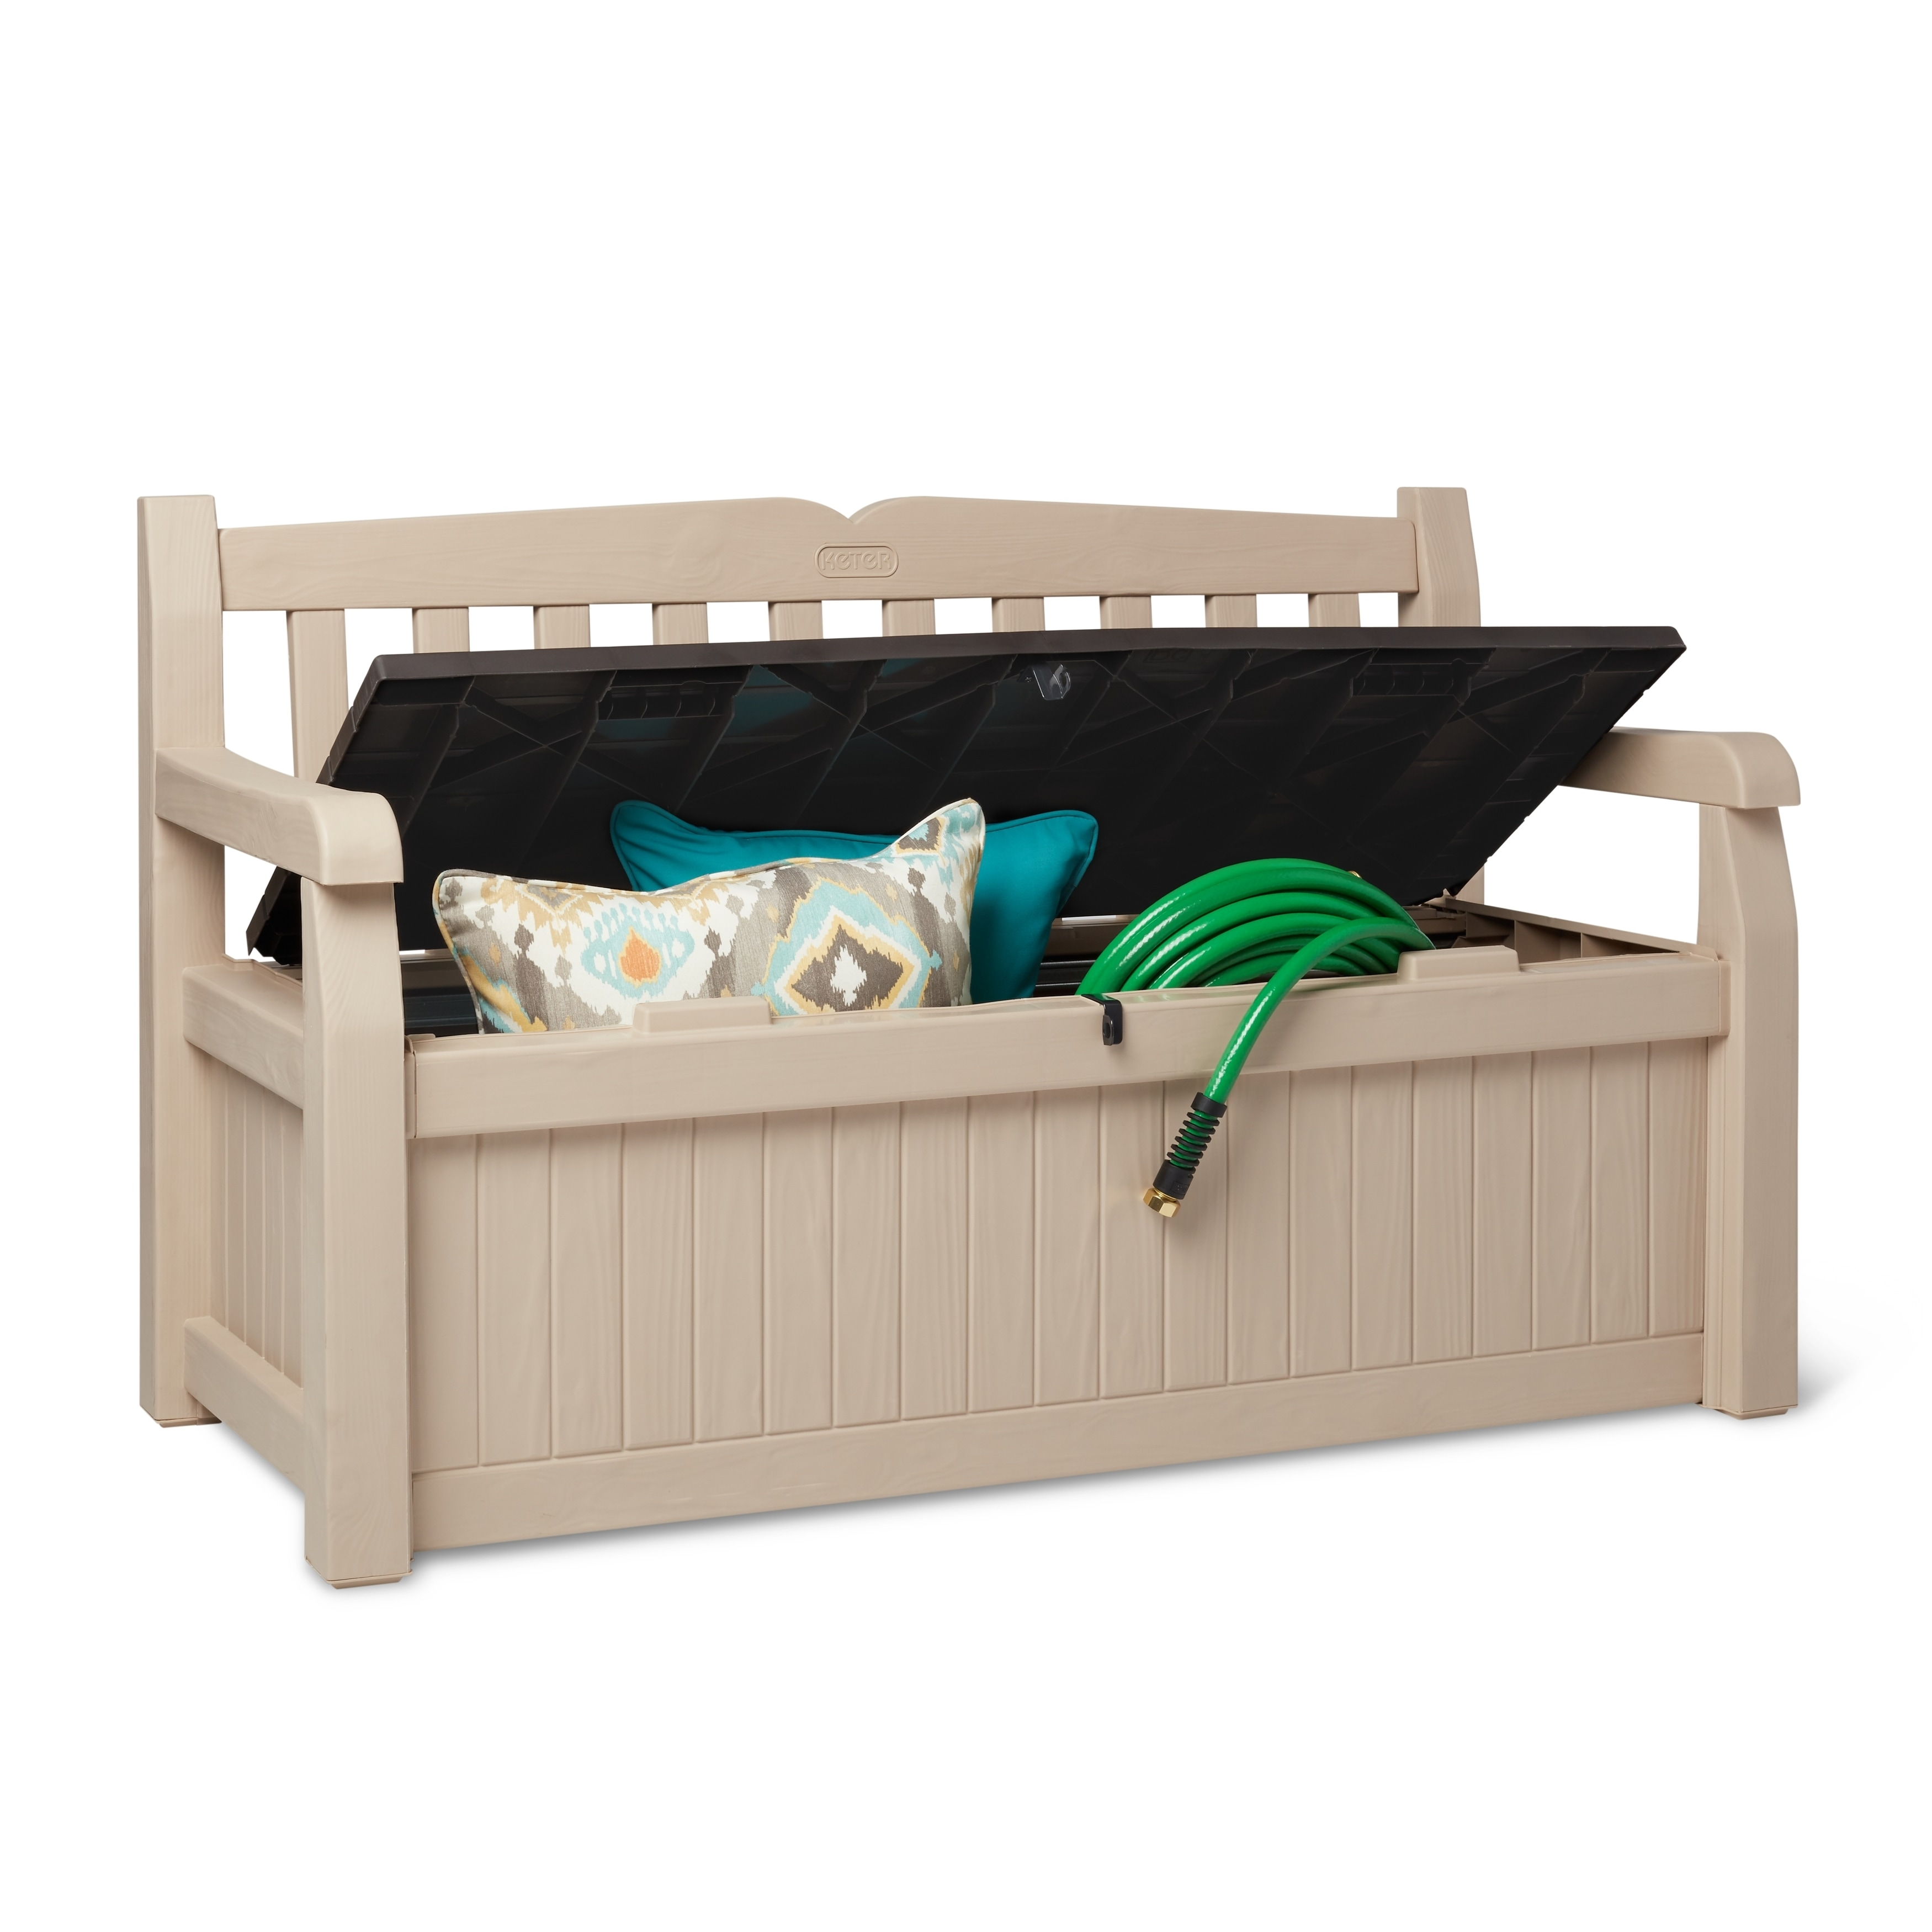 outside outdoor waterproof patio wooden back storage with sofa bench top black table balcony metal containers cushion superb garden small interior box seat plastic chair furniture